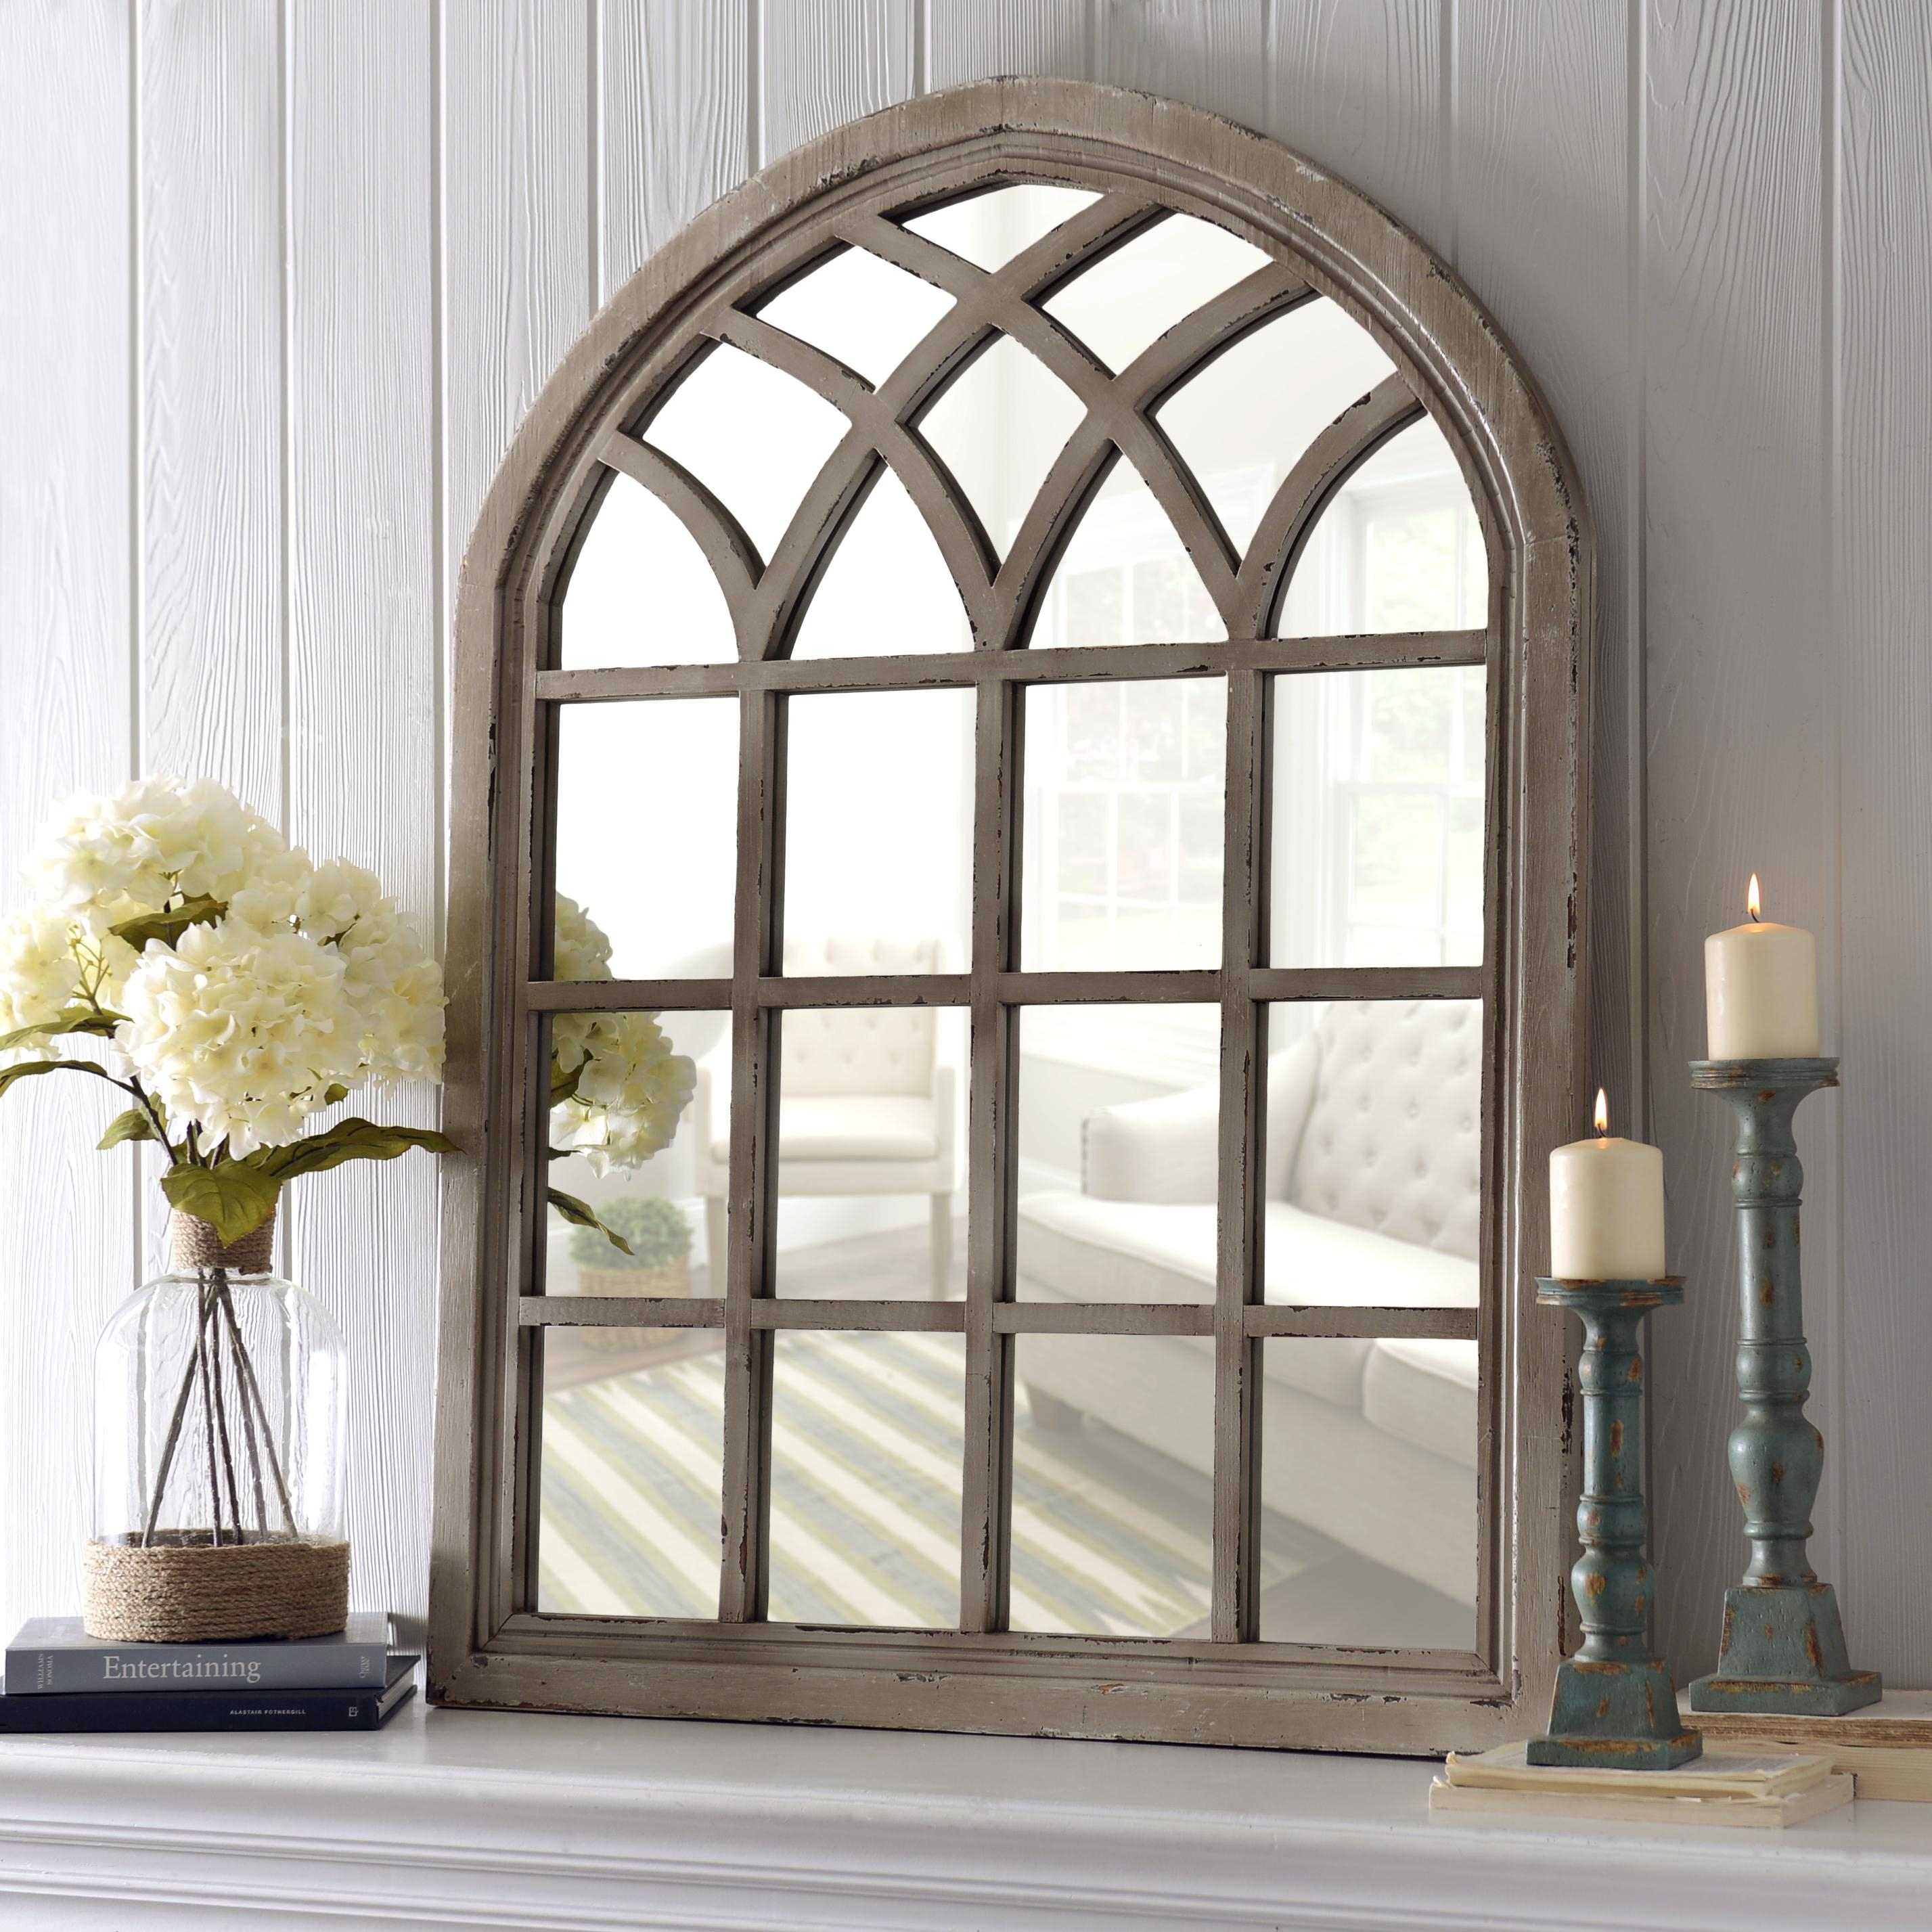 White Mirror Large Mirror Window Pane Mirror Window Mirror In Shabby Chic Window Mirror (Image 14 of 15)